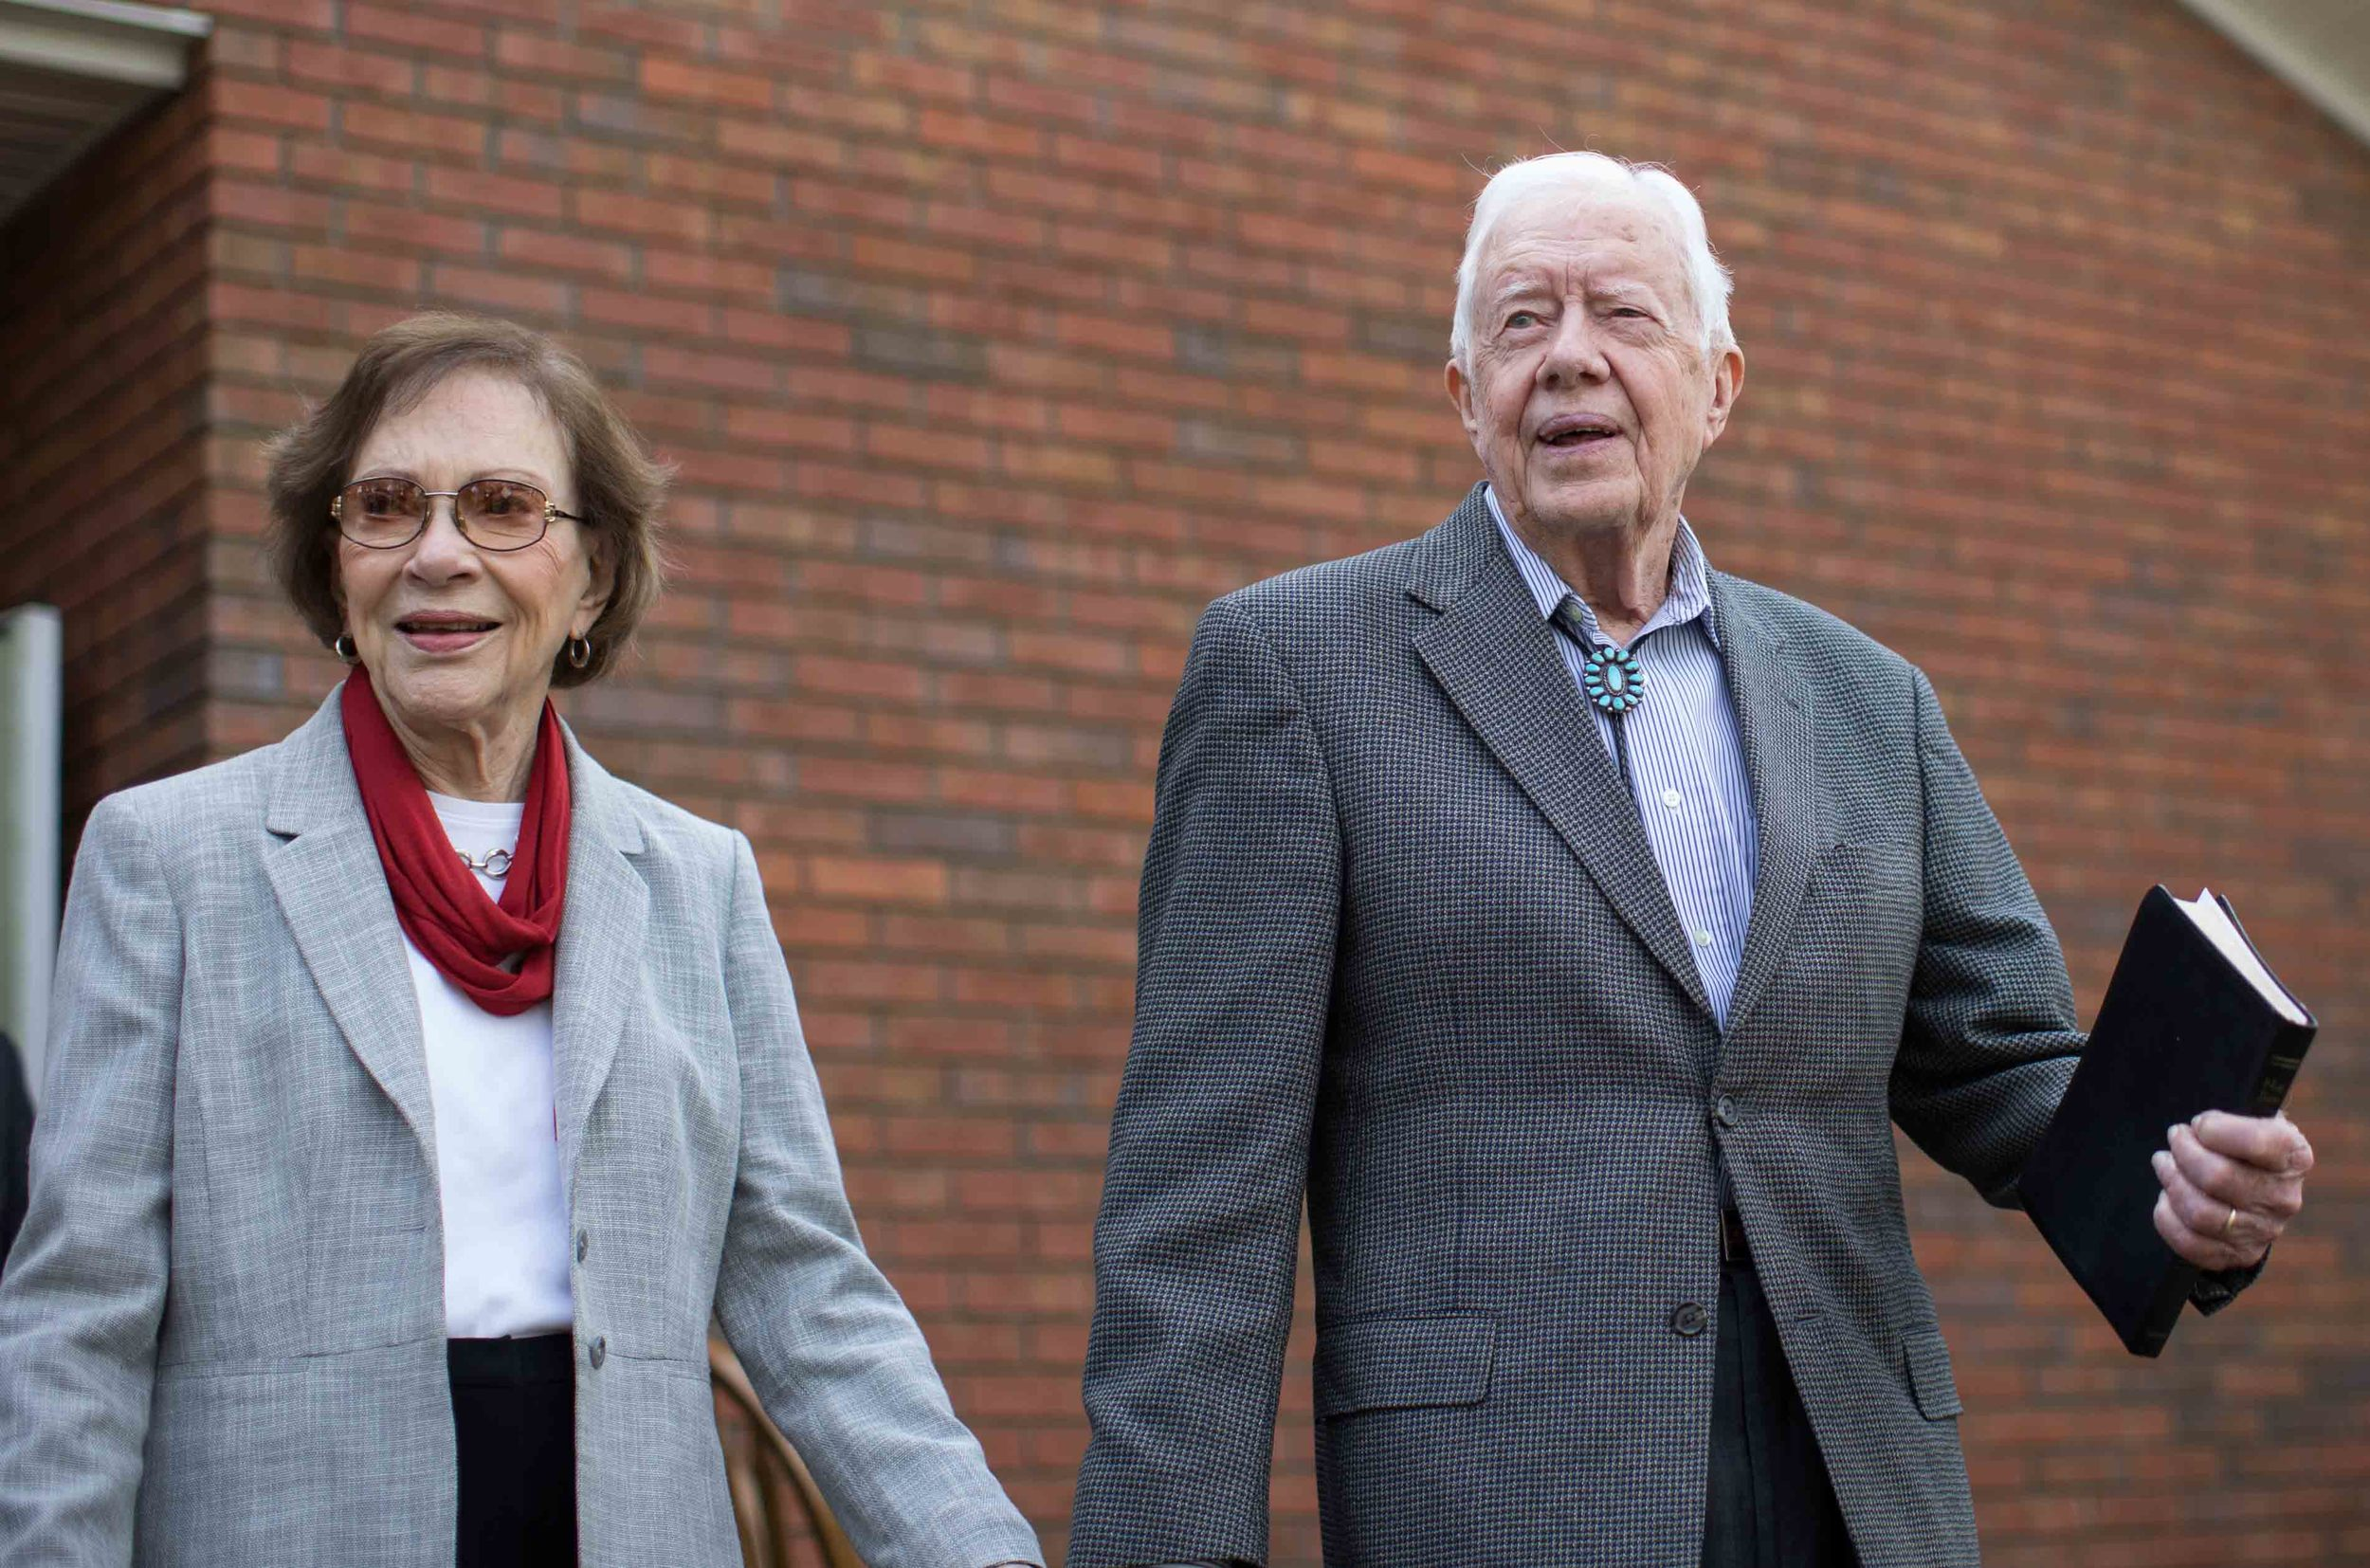 """Former President Jimmy Carter walks with his wife Rosalynn after teaching Sunday School class at Maranatha Baptist Church Sunday, Dec. 13, 2015, in Plains, Ga. A recent MRI showing no cancer on Jimmy Carter's brain is """"very positive"""" news for the former president but will not end his medical treatment, doctors said. Carter, 91, announced Dec. 6 that doctors found no evidence of the four lesions discovered on his brain this summer and no signs of new cancer growth. (AP Photo/Branden Camp)"""